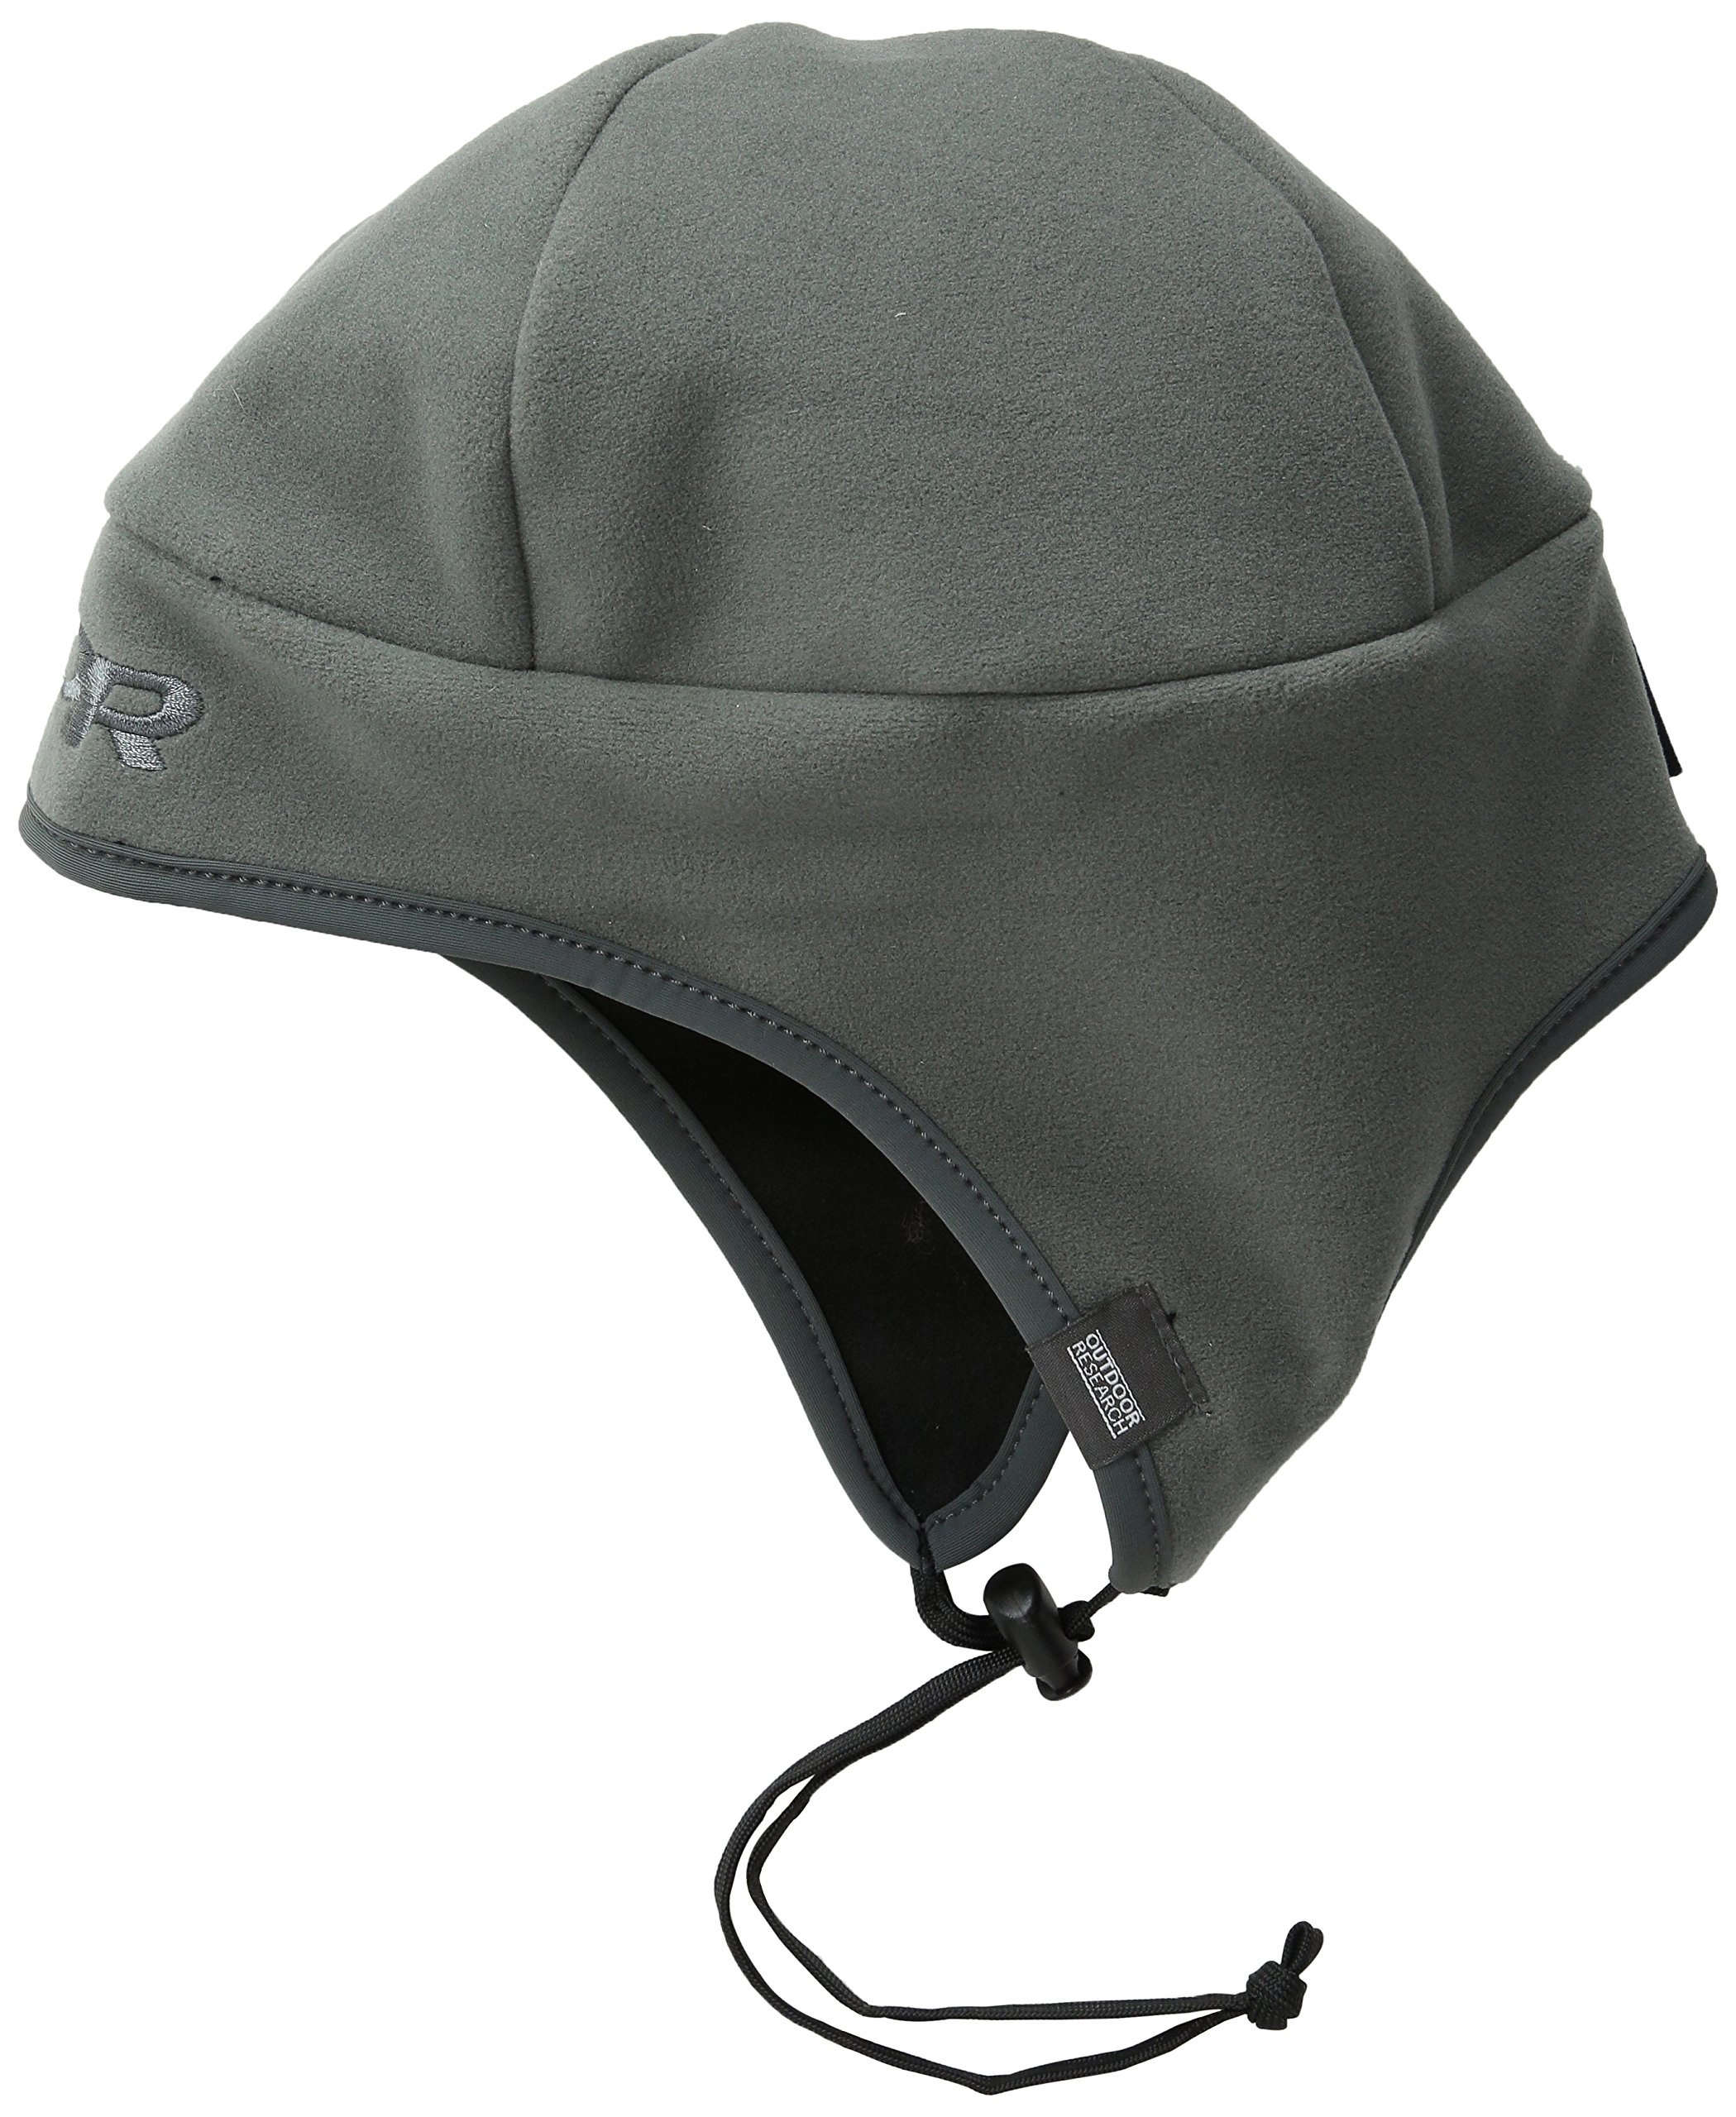 Outdoor Research Peruvian Hat, Charcoal, Small